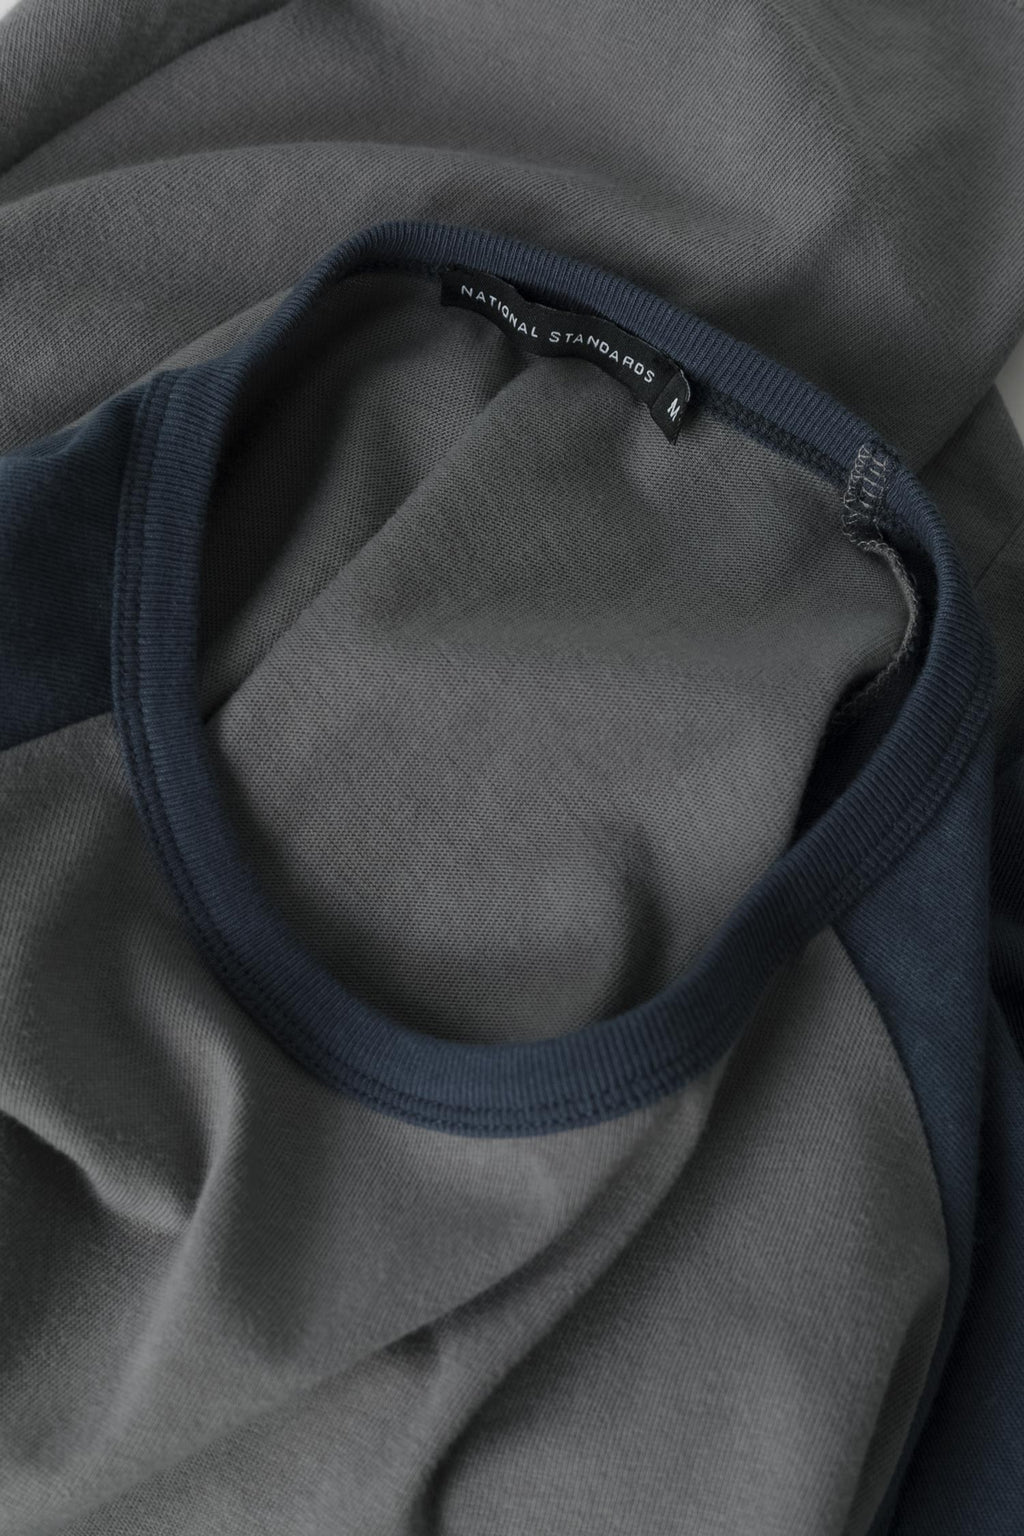 Fabric detail of the ready-to-wear Spun Jersey Raglan in Grey / Blue 007